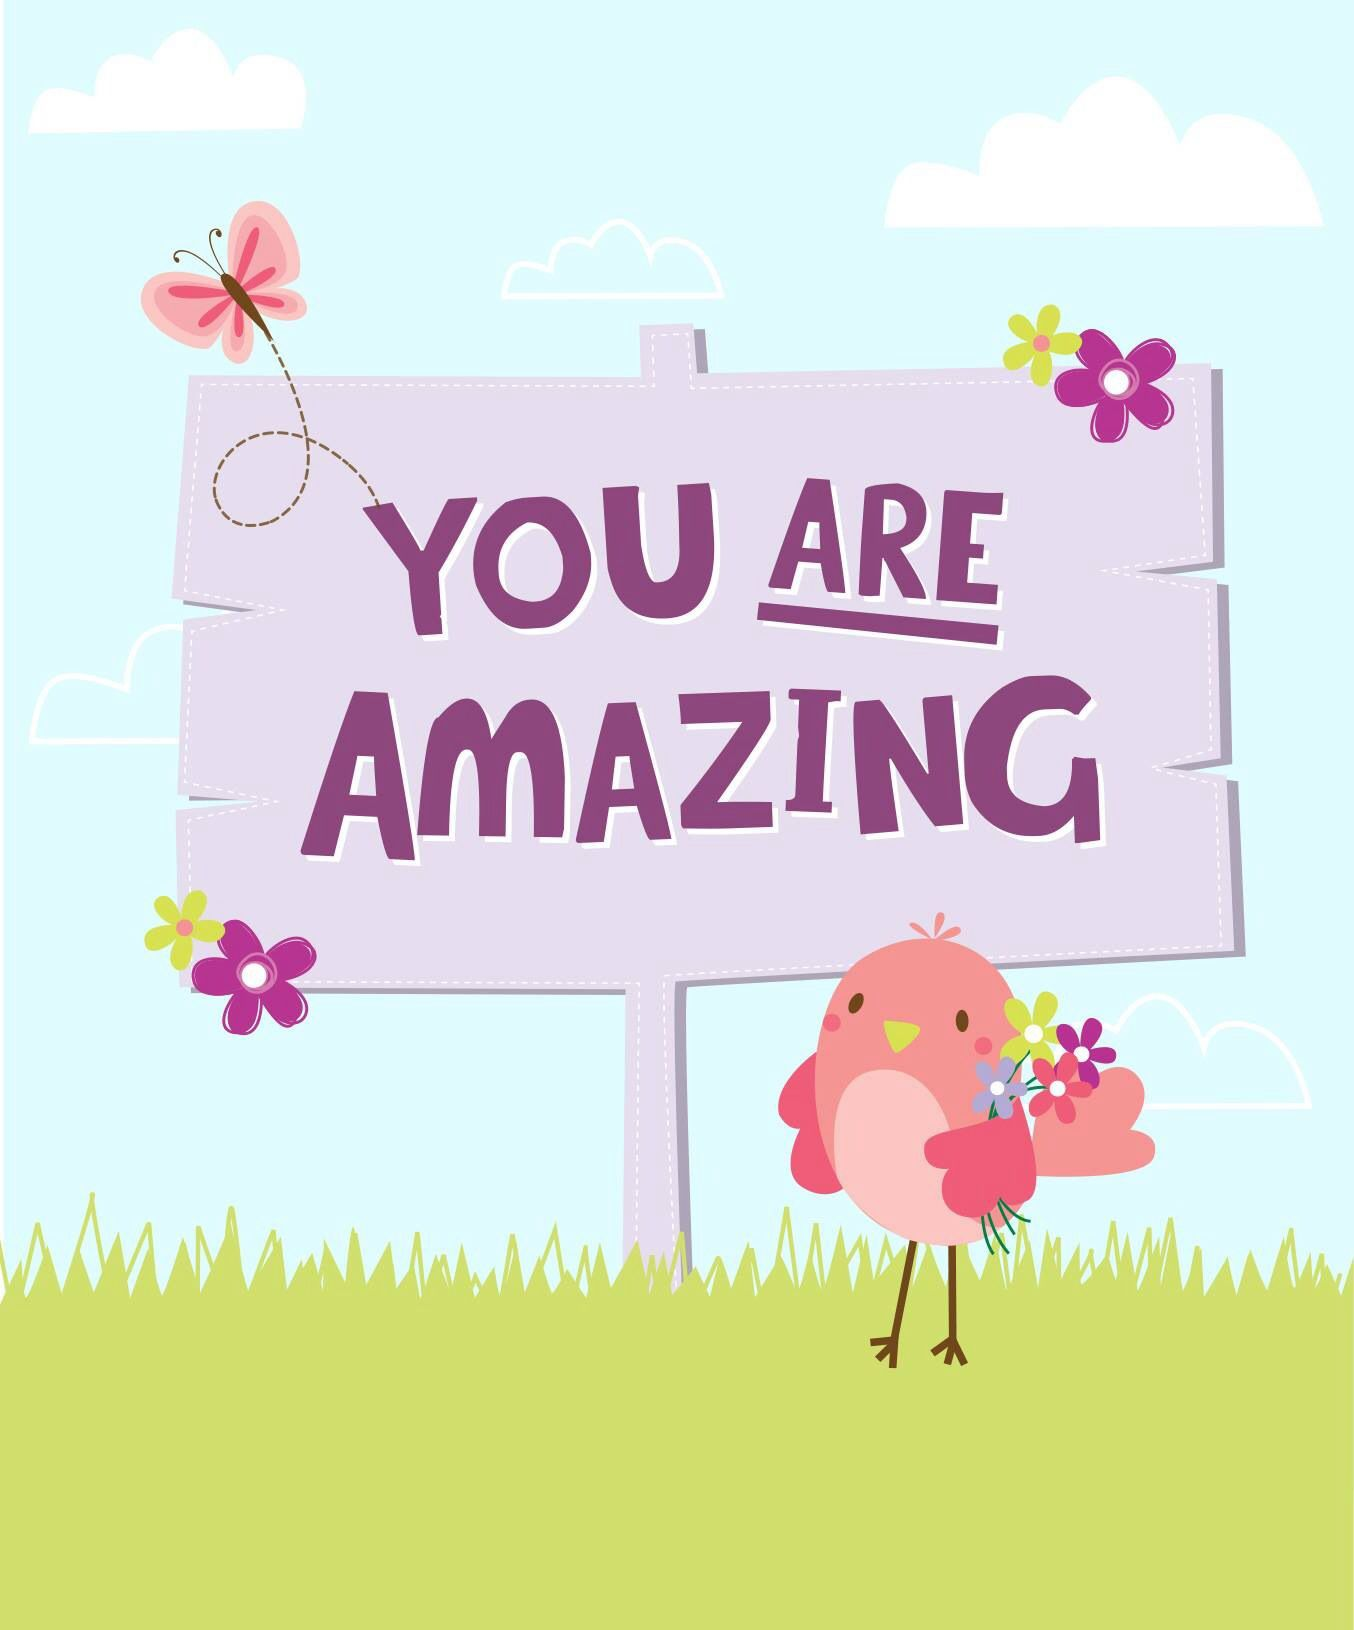 You Are Amazing: Extraordinary Words